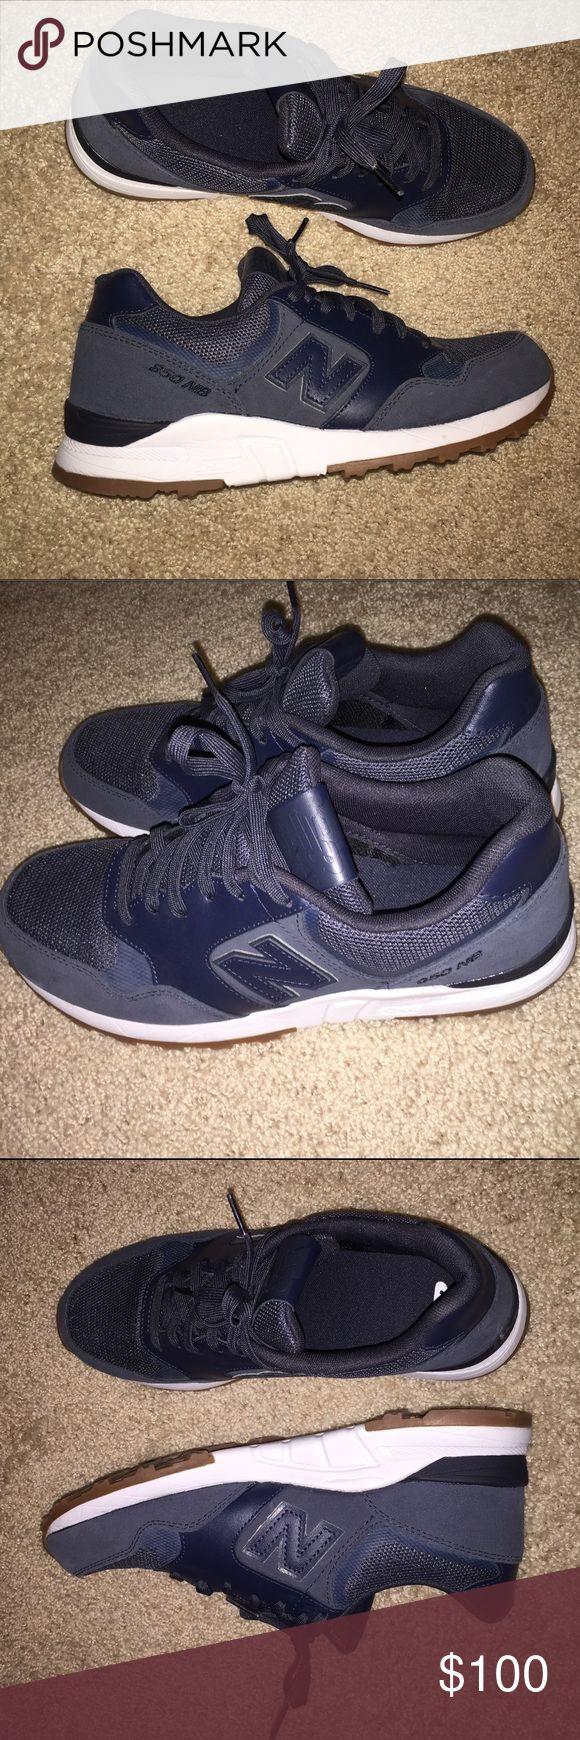 New Balance 850 Sneakers Men's size 9 1/2 Women's (It fits me as a 7 1/2)  Brand New, only worn ONCE. New Balance Shoes Sneakers